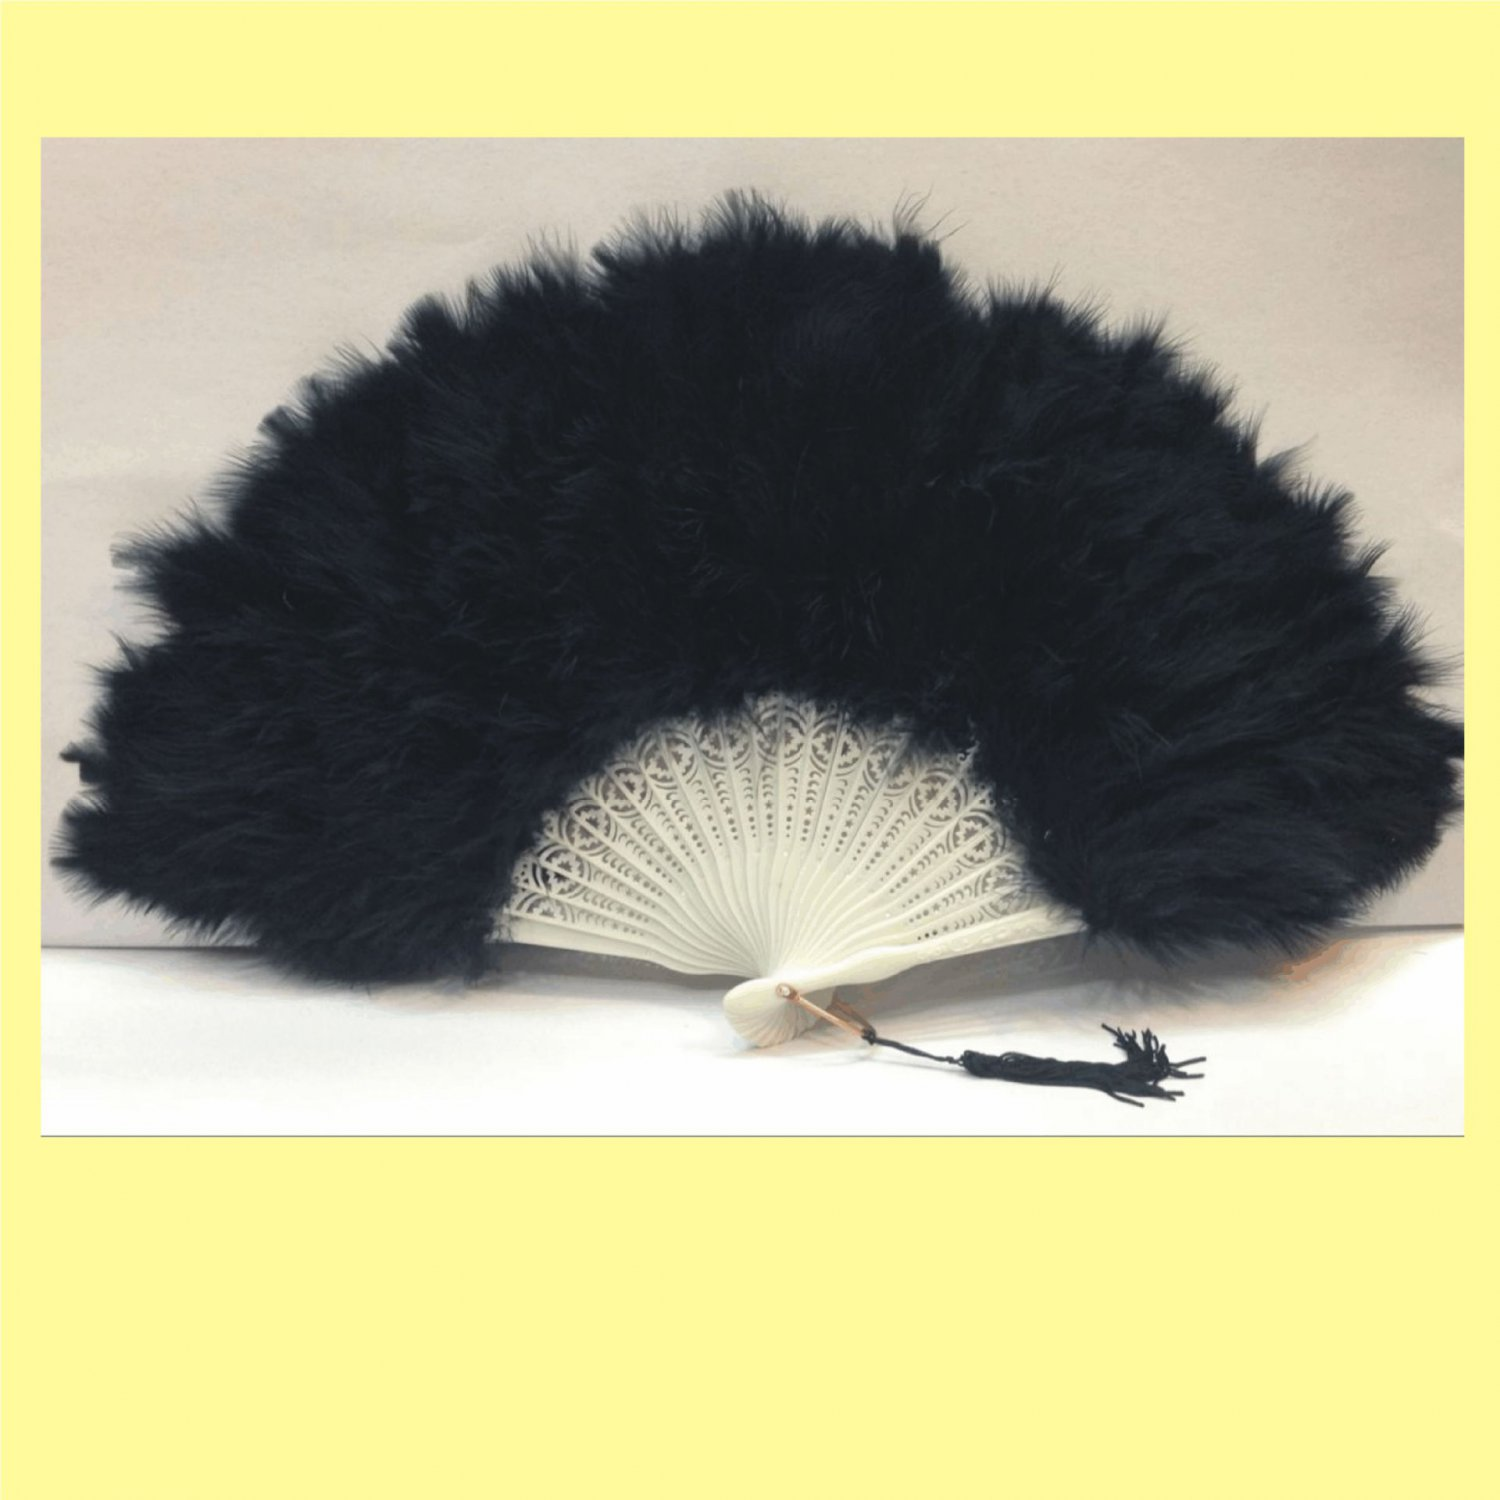 Black Marabou feather fan costumes Ladies Fancy Dress Wedding party burlesque